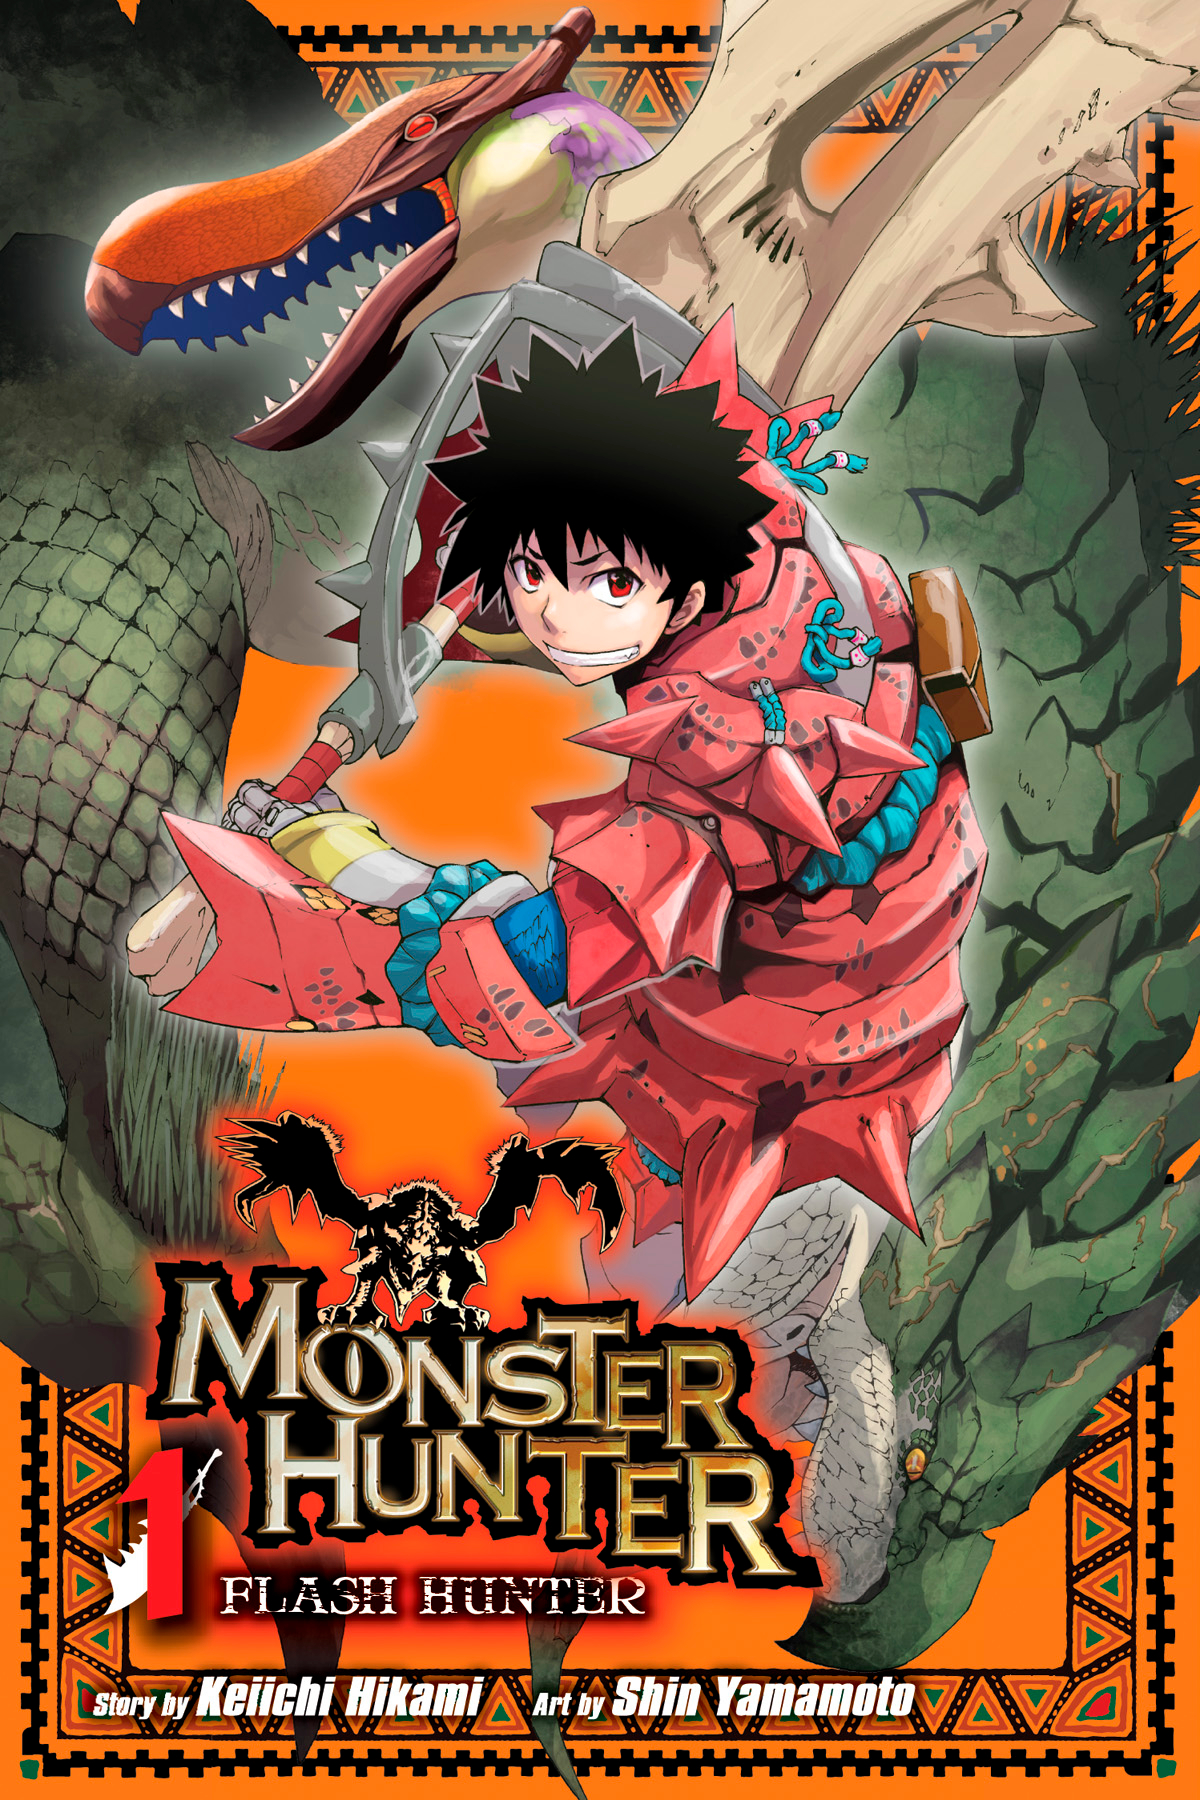 MONSTER HUNTER FLASH HUNTER GN VOL 01